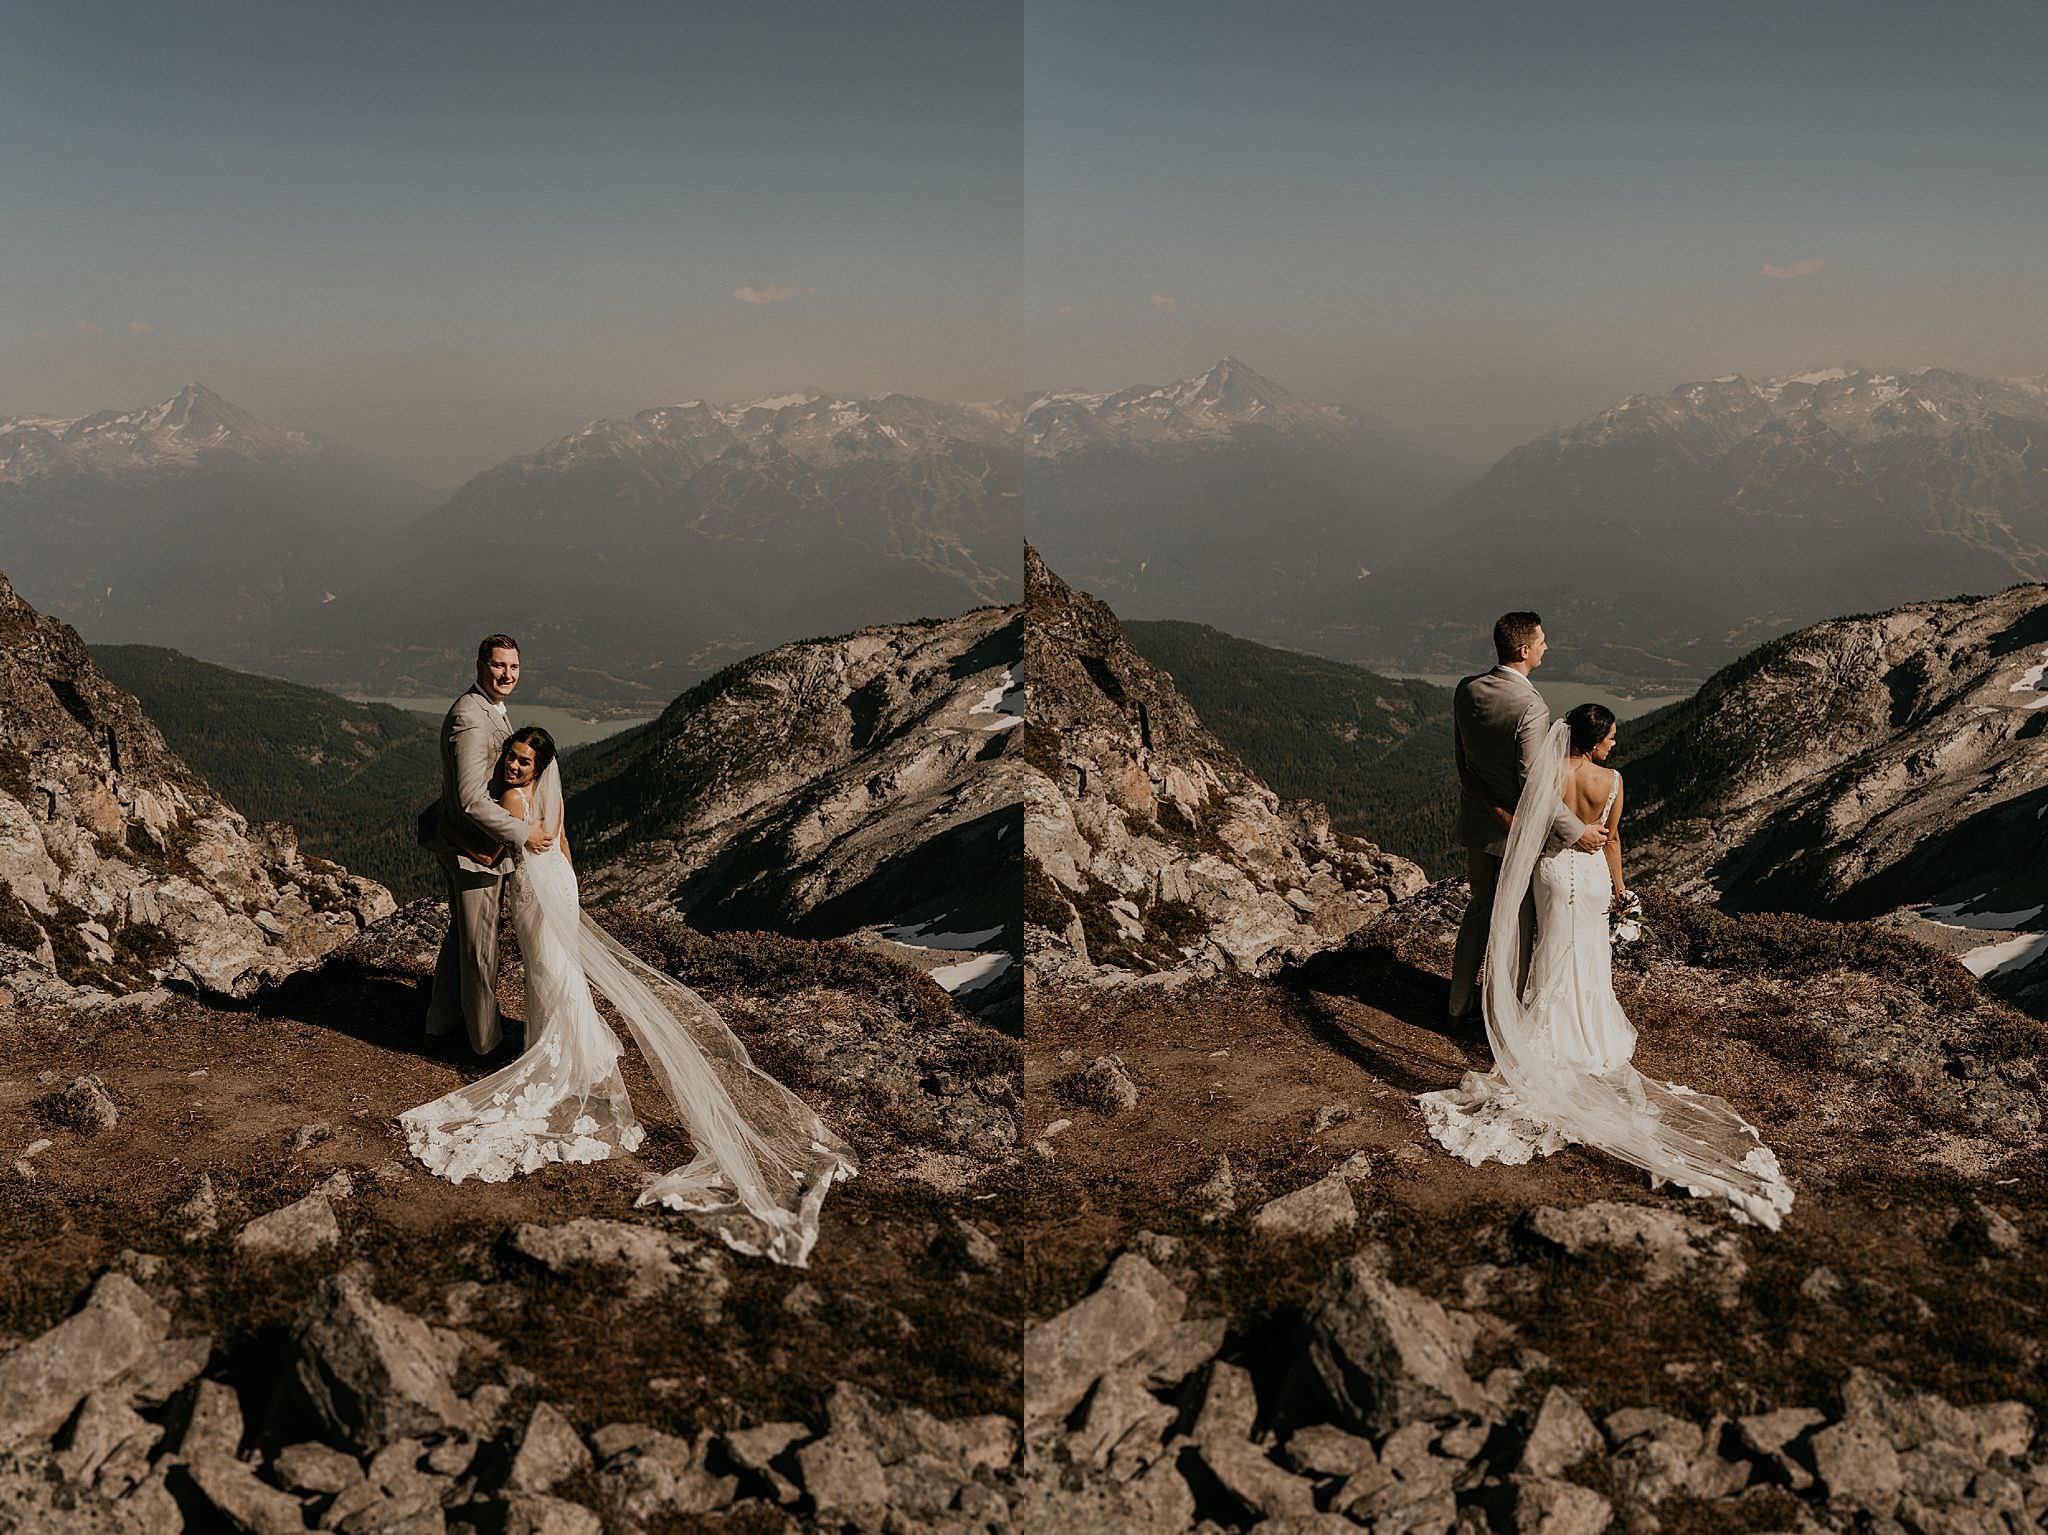 whistler-mountain-helicopter-elopement-wedding_0104.jpg